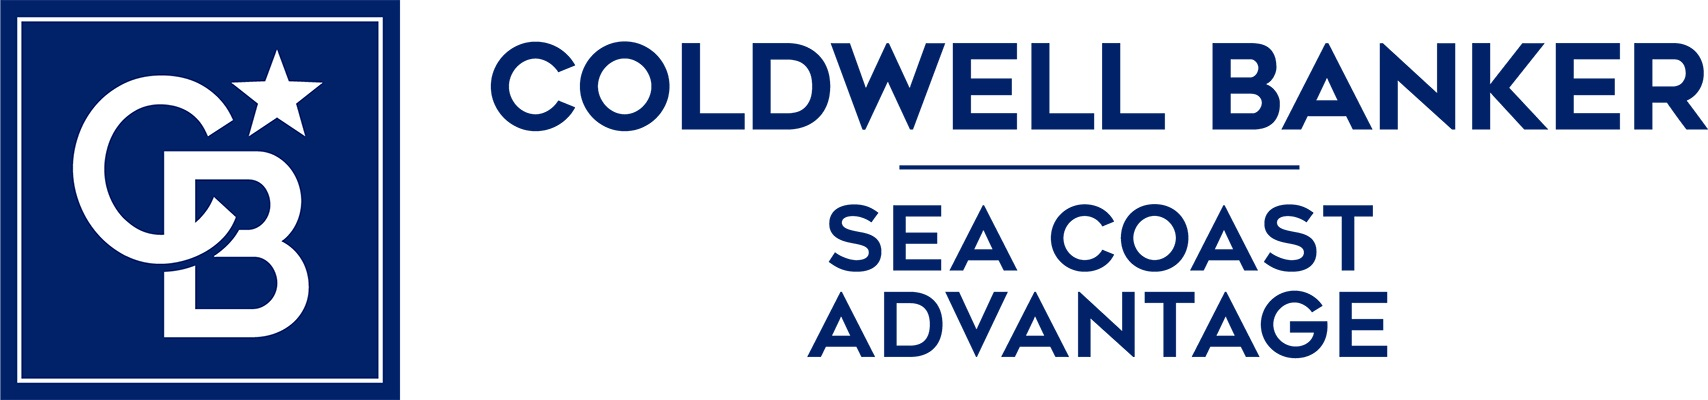 Mary Ann Dietrich - Coldwell Banker Sea Coast Advantage Realty Logo